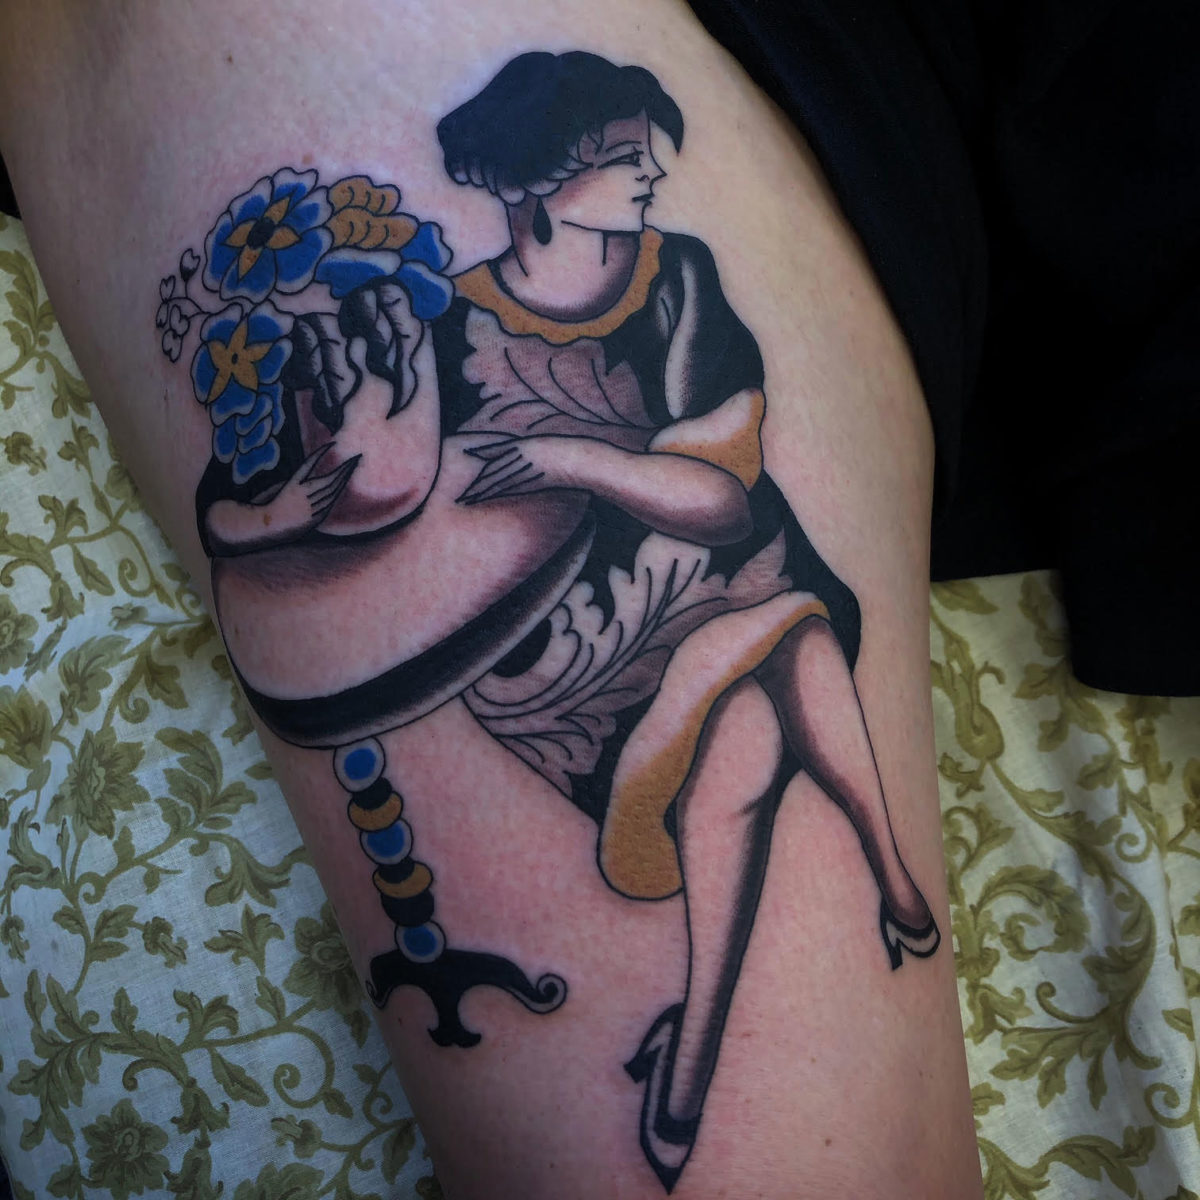 tattoo of victorian lady sitting at table holding a pot full of plants wearing ornamental dress